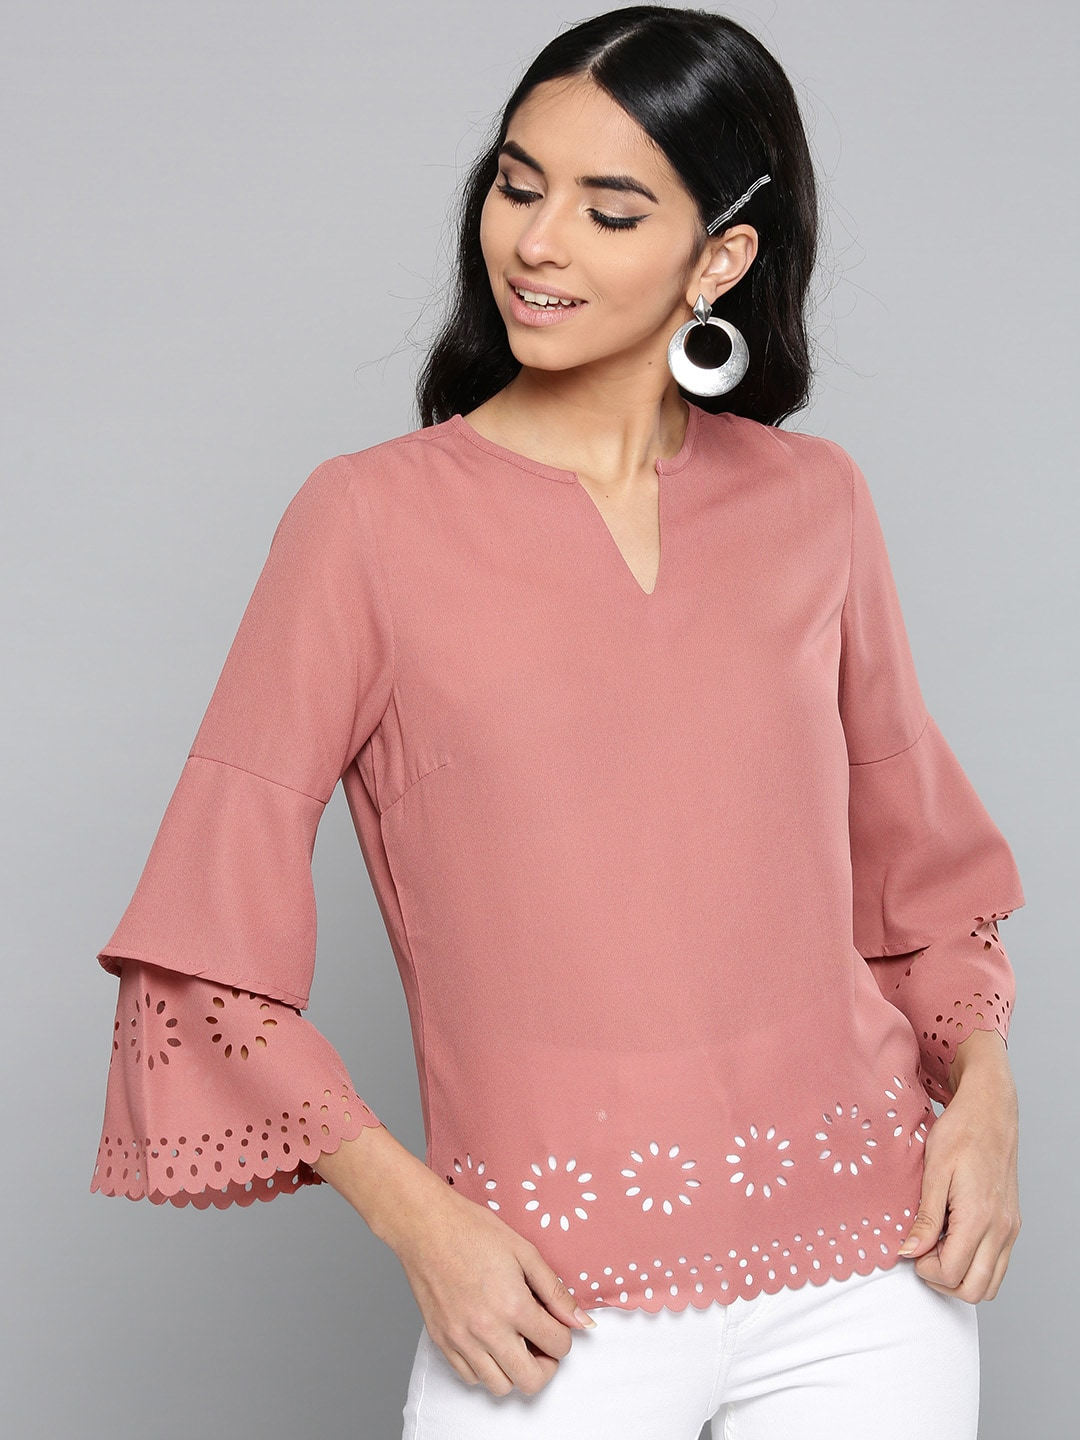 4f24d4751da Women Harpa Tops - Buy Women Harpa Tops online in India